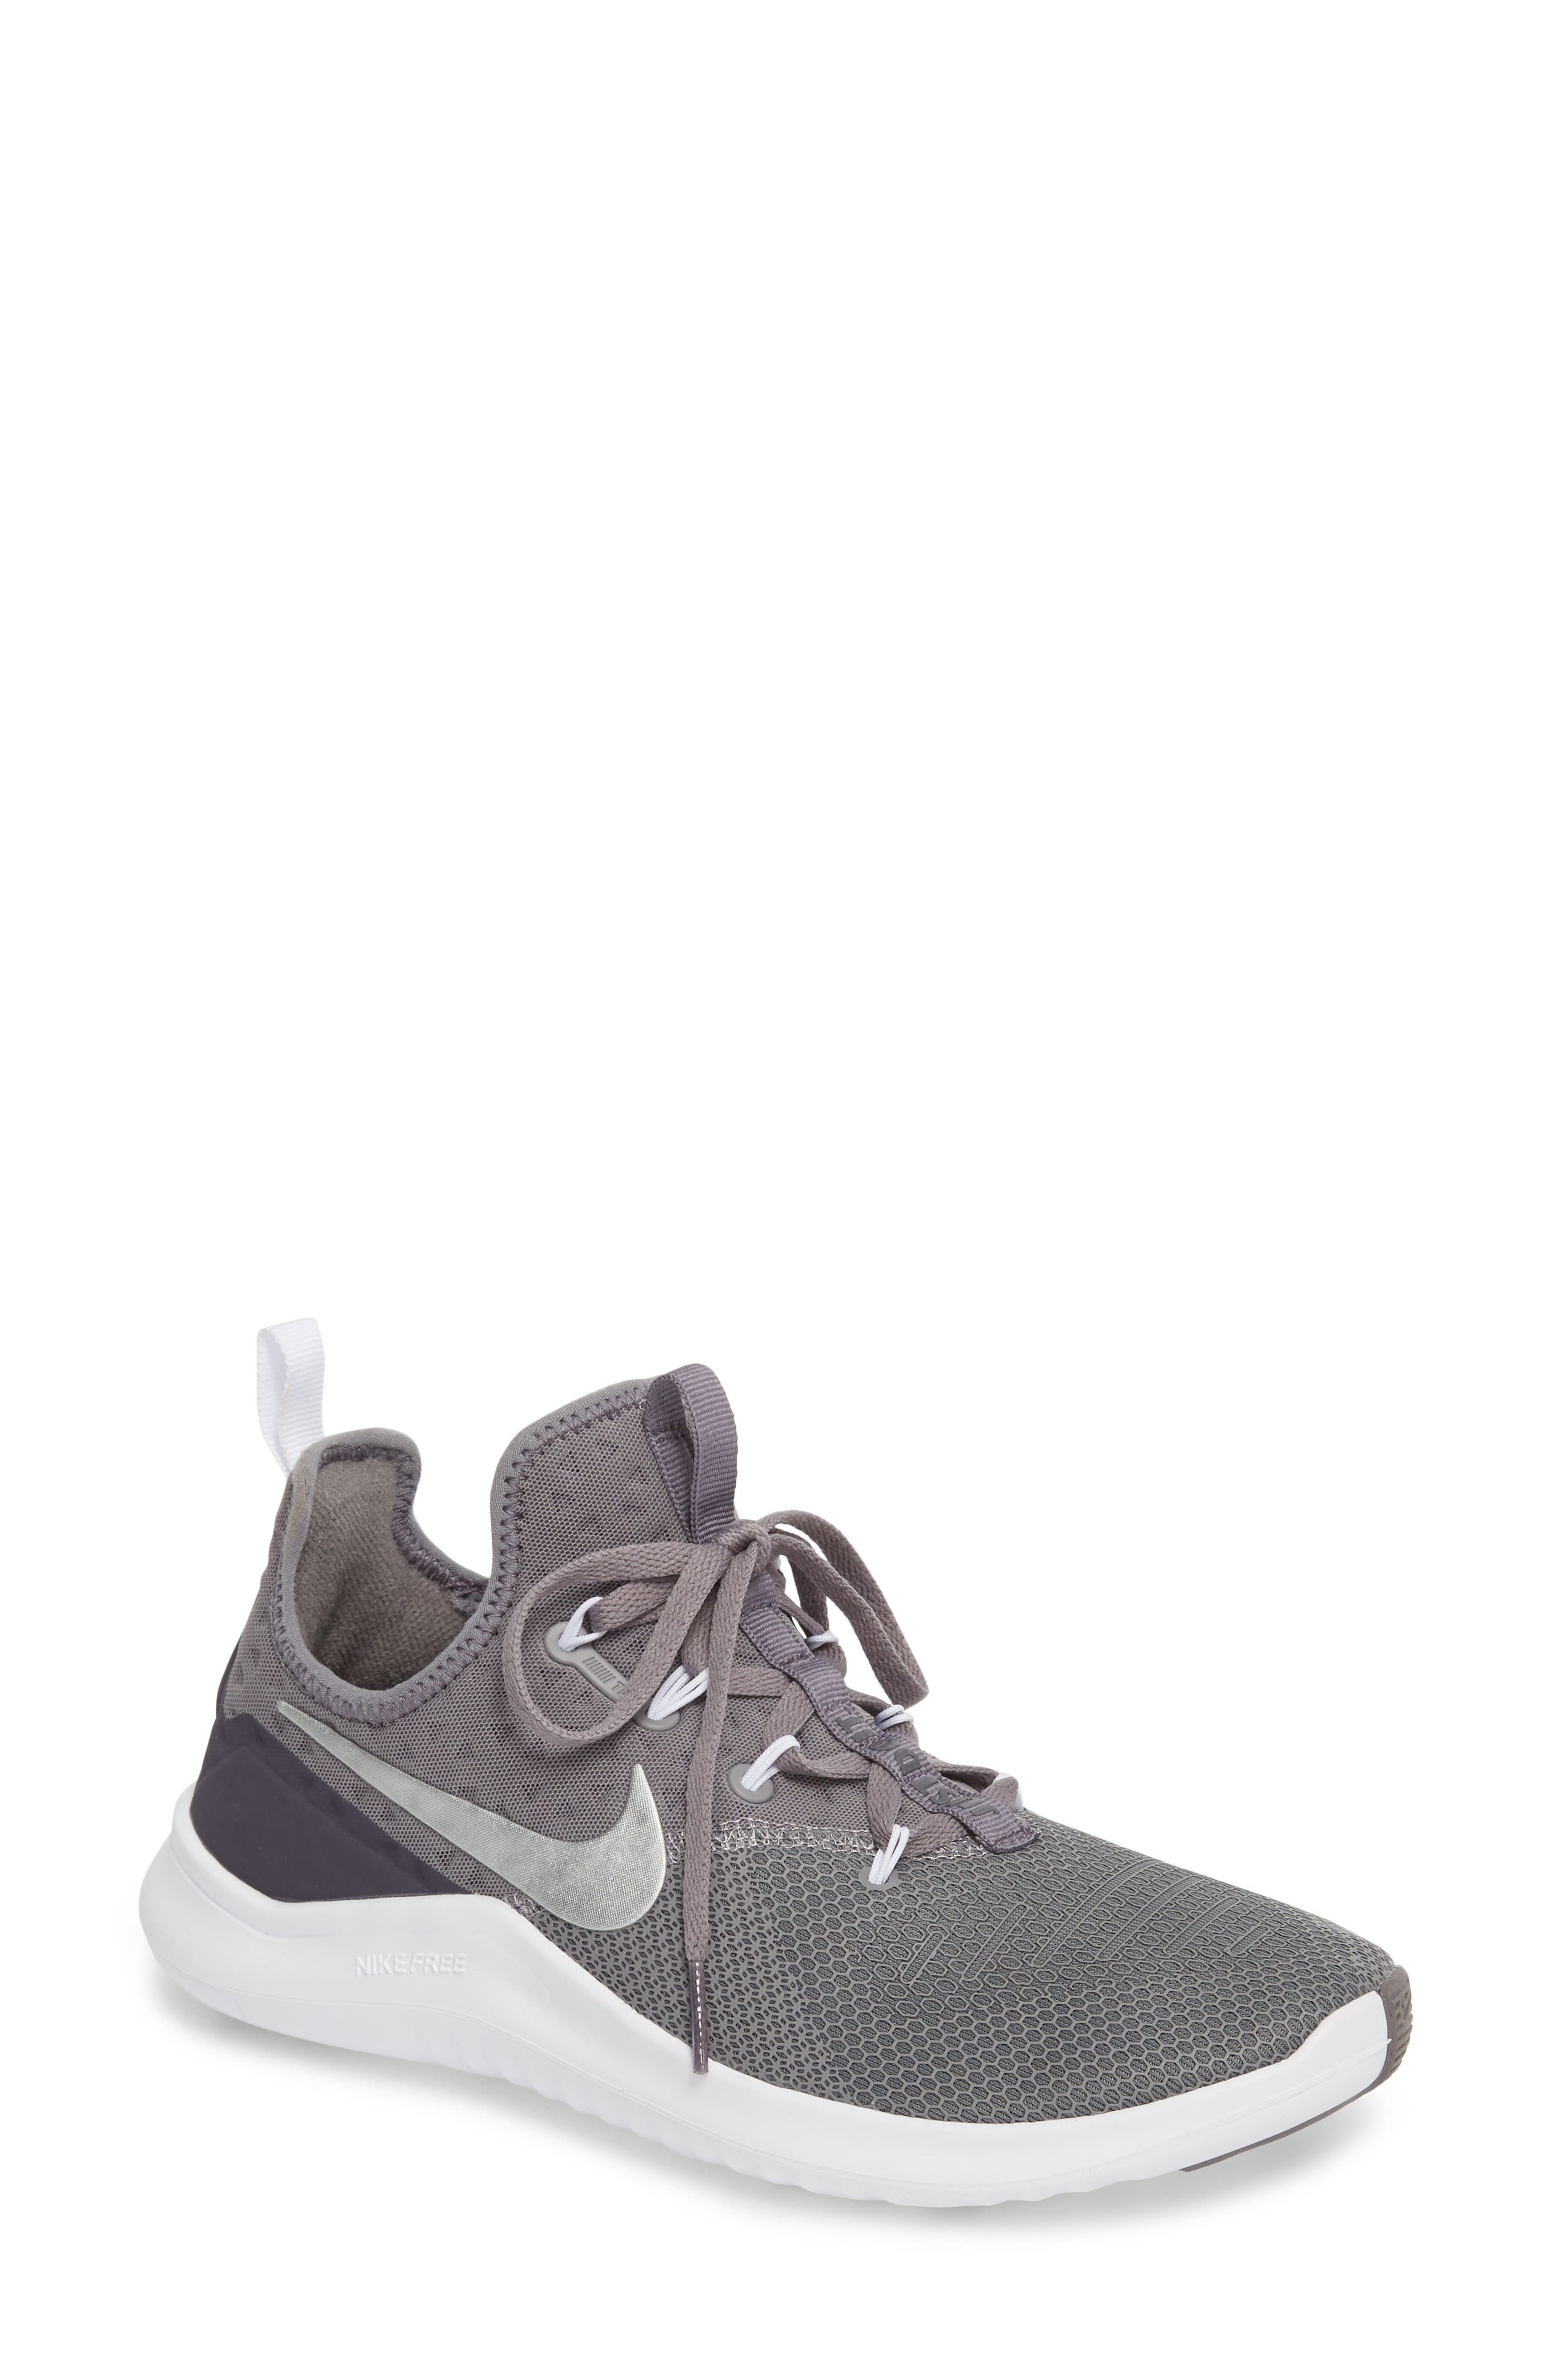 d8f690b5ab49 Nike Women s Training Shoes and Sneakers